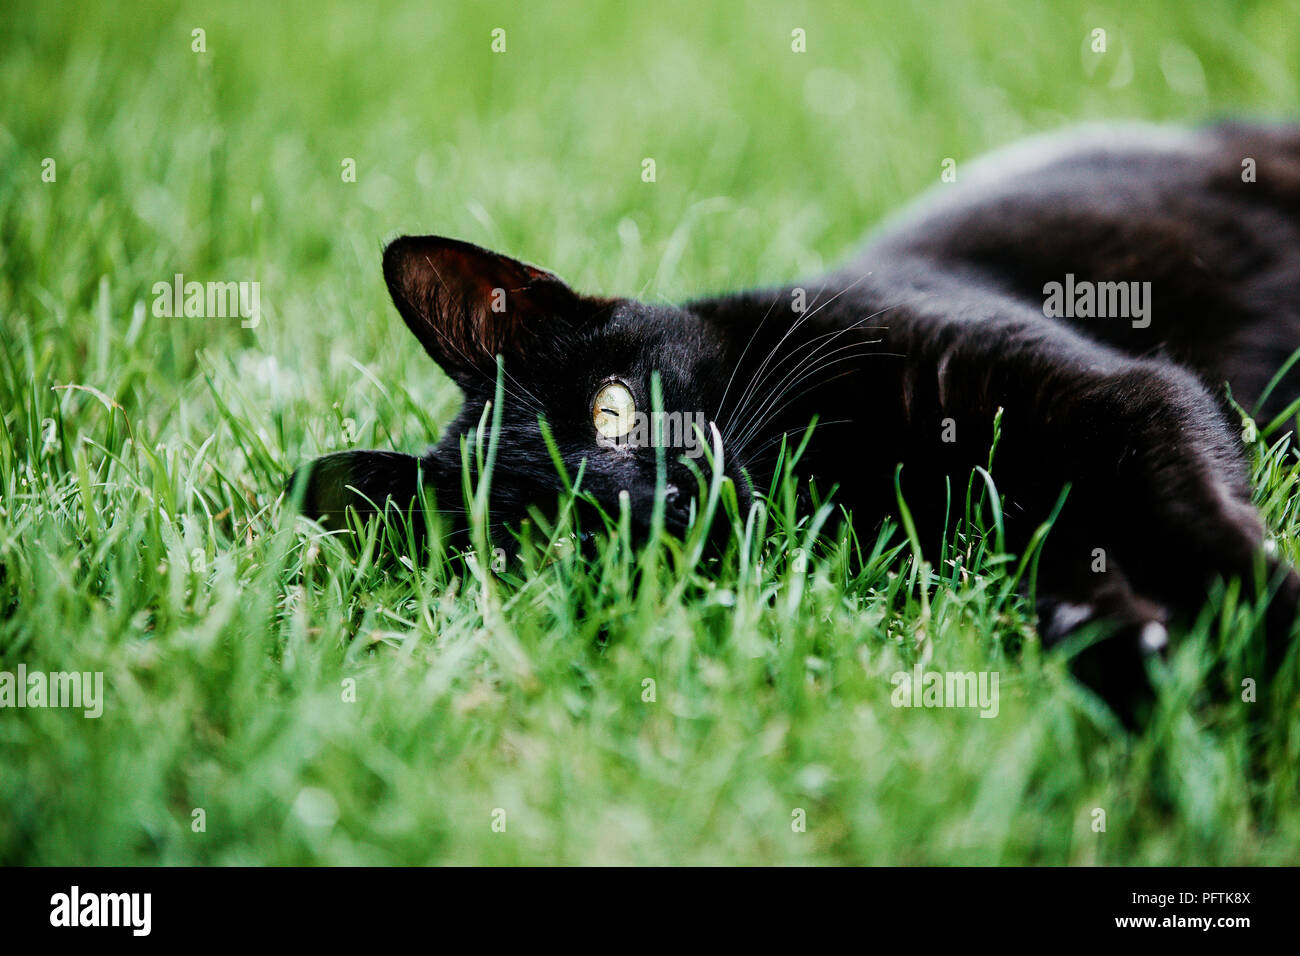 Close-up of black cat resting on green grass outside in the garden. Black cat superstition as bringer of bad luck or good luck. Black cat appreciation - Stock Image